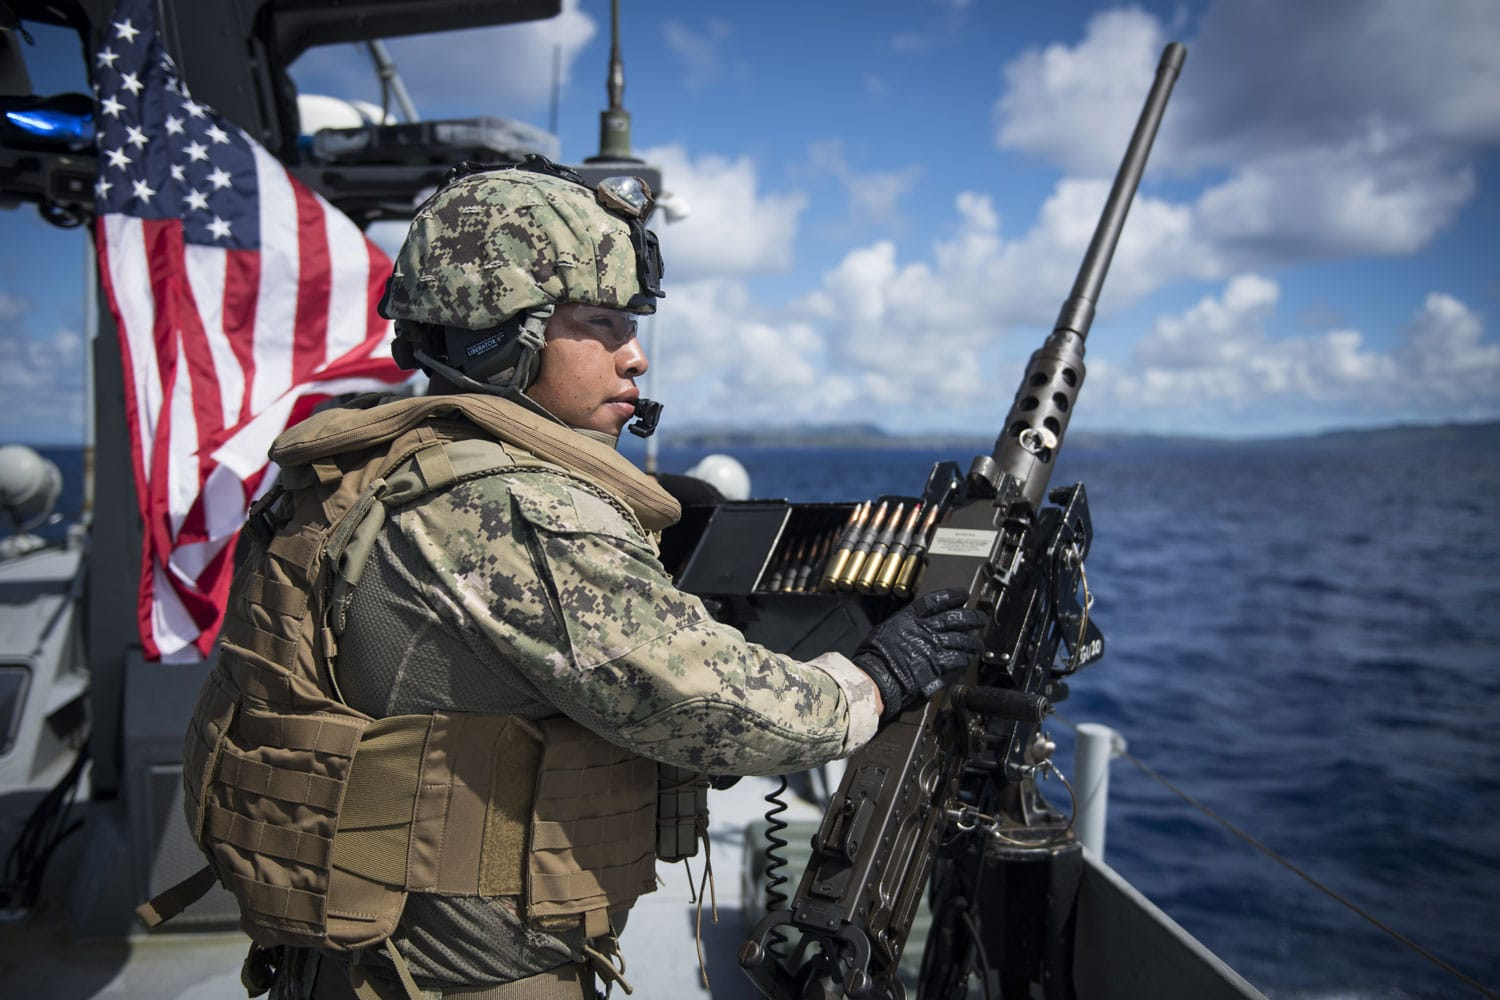 Jairo Diaz mans a United States Navy 50-caliber machine gun aboard a MK VI patrol boat while providing high value asset protection for the aircraft carrier USS Theodore Roosevelt as it transits to Apra Harbor, Guam.